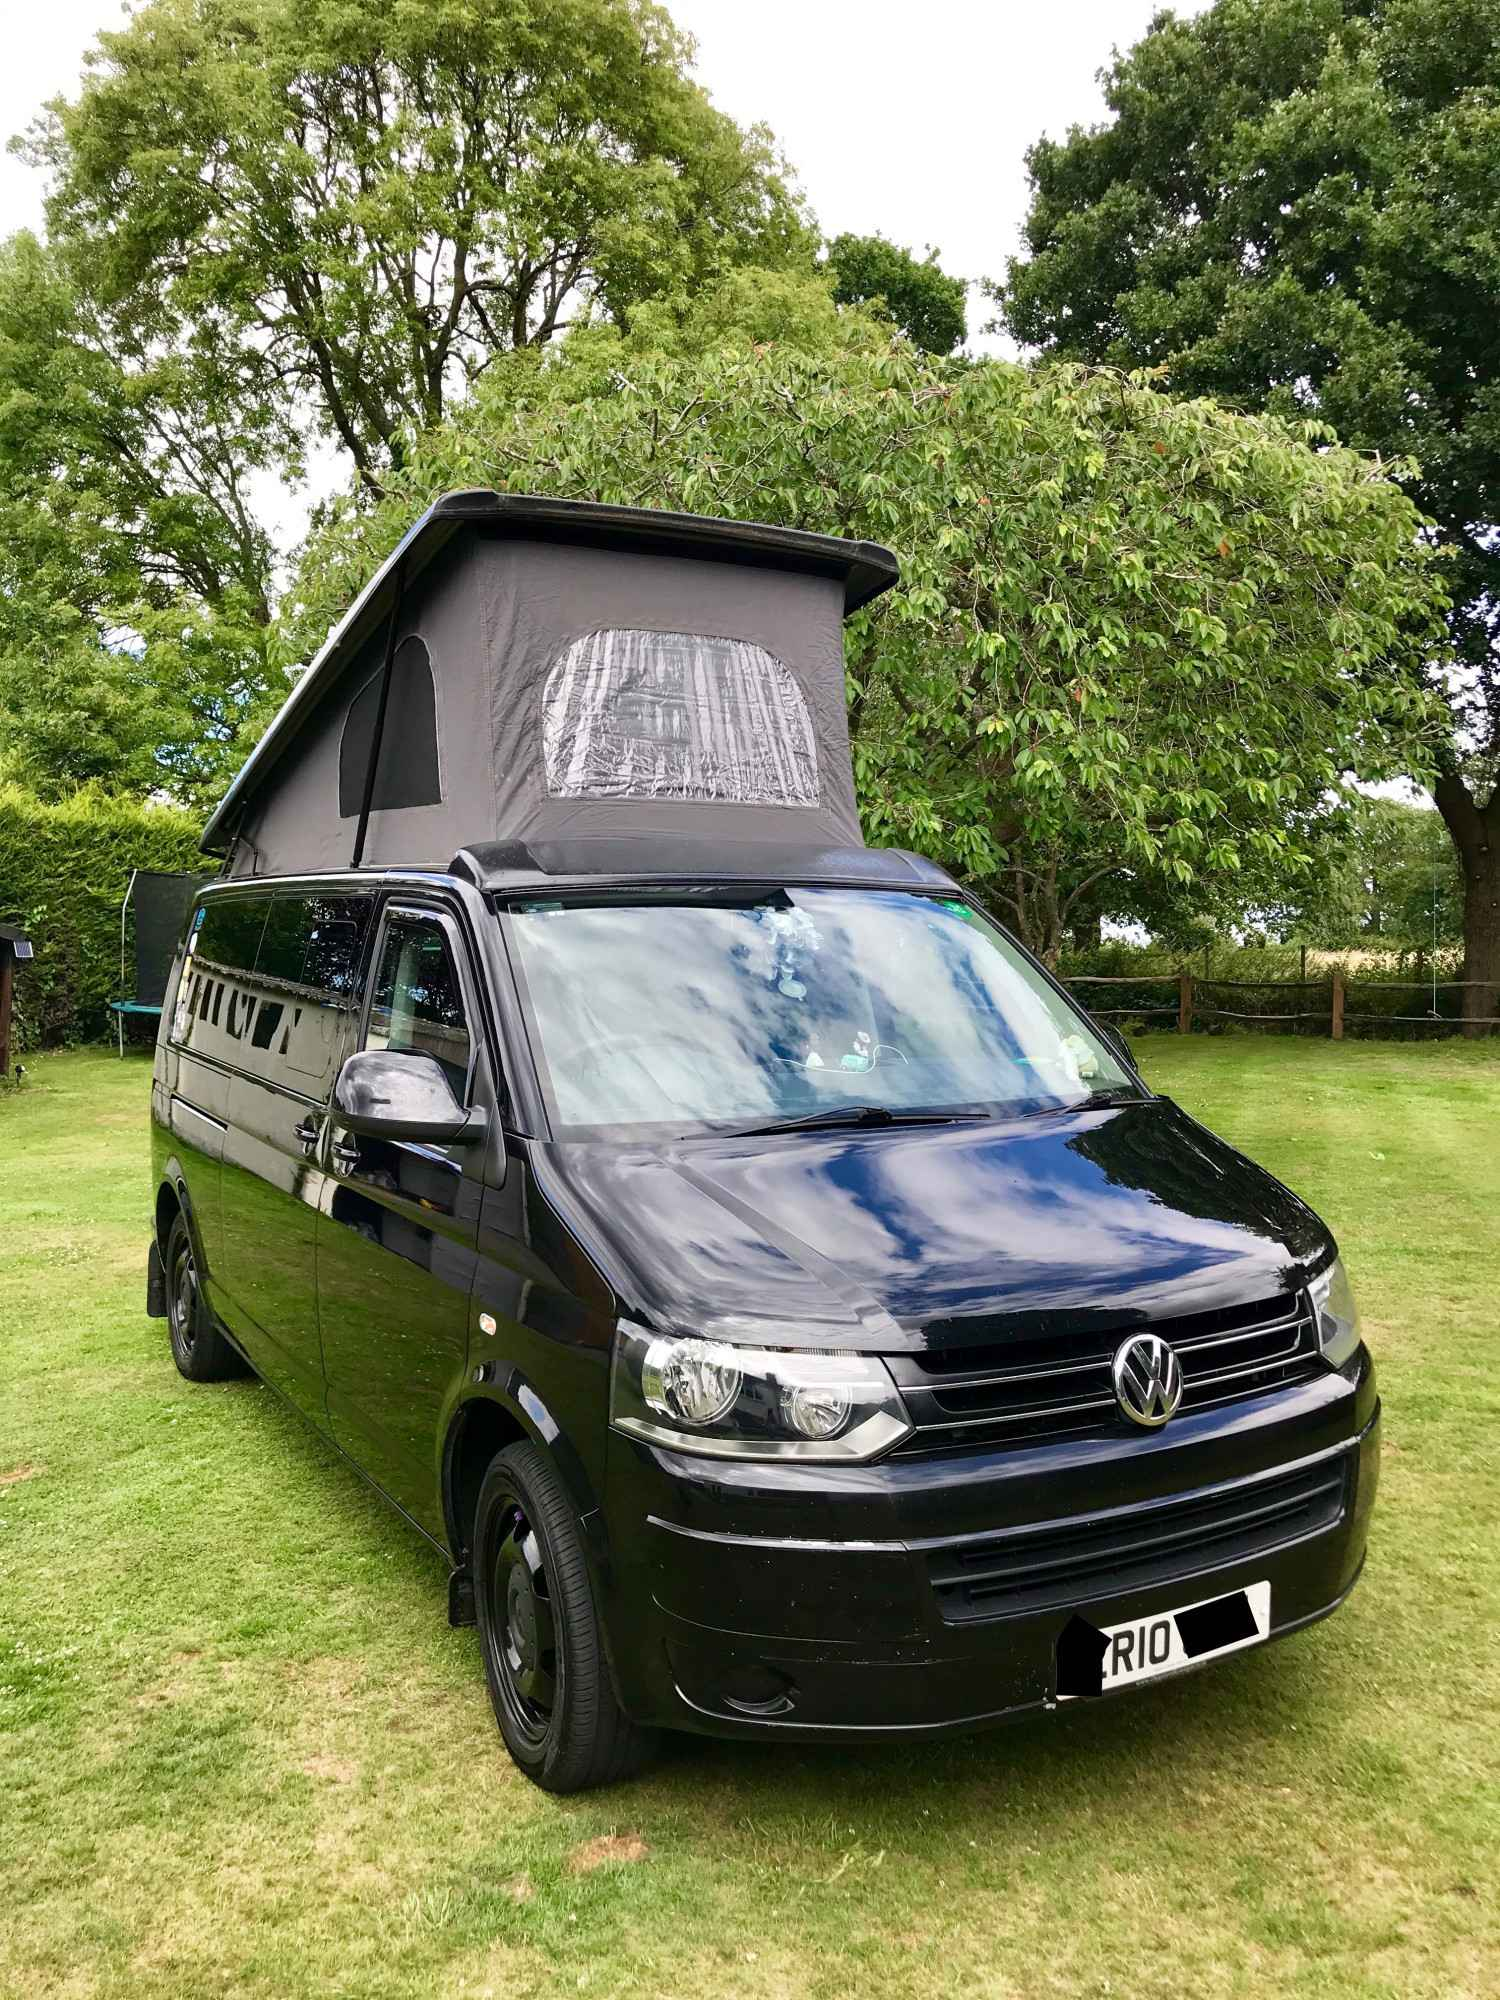 A VW T5 Campervan called Rio and for hire in send, Surrey